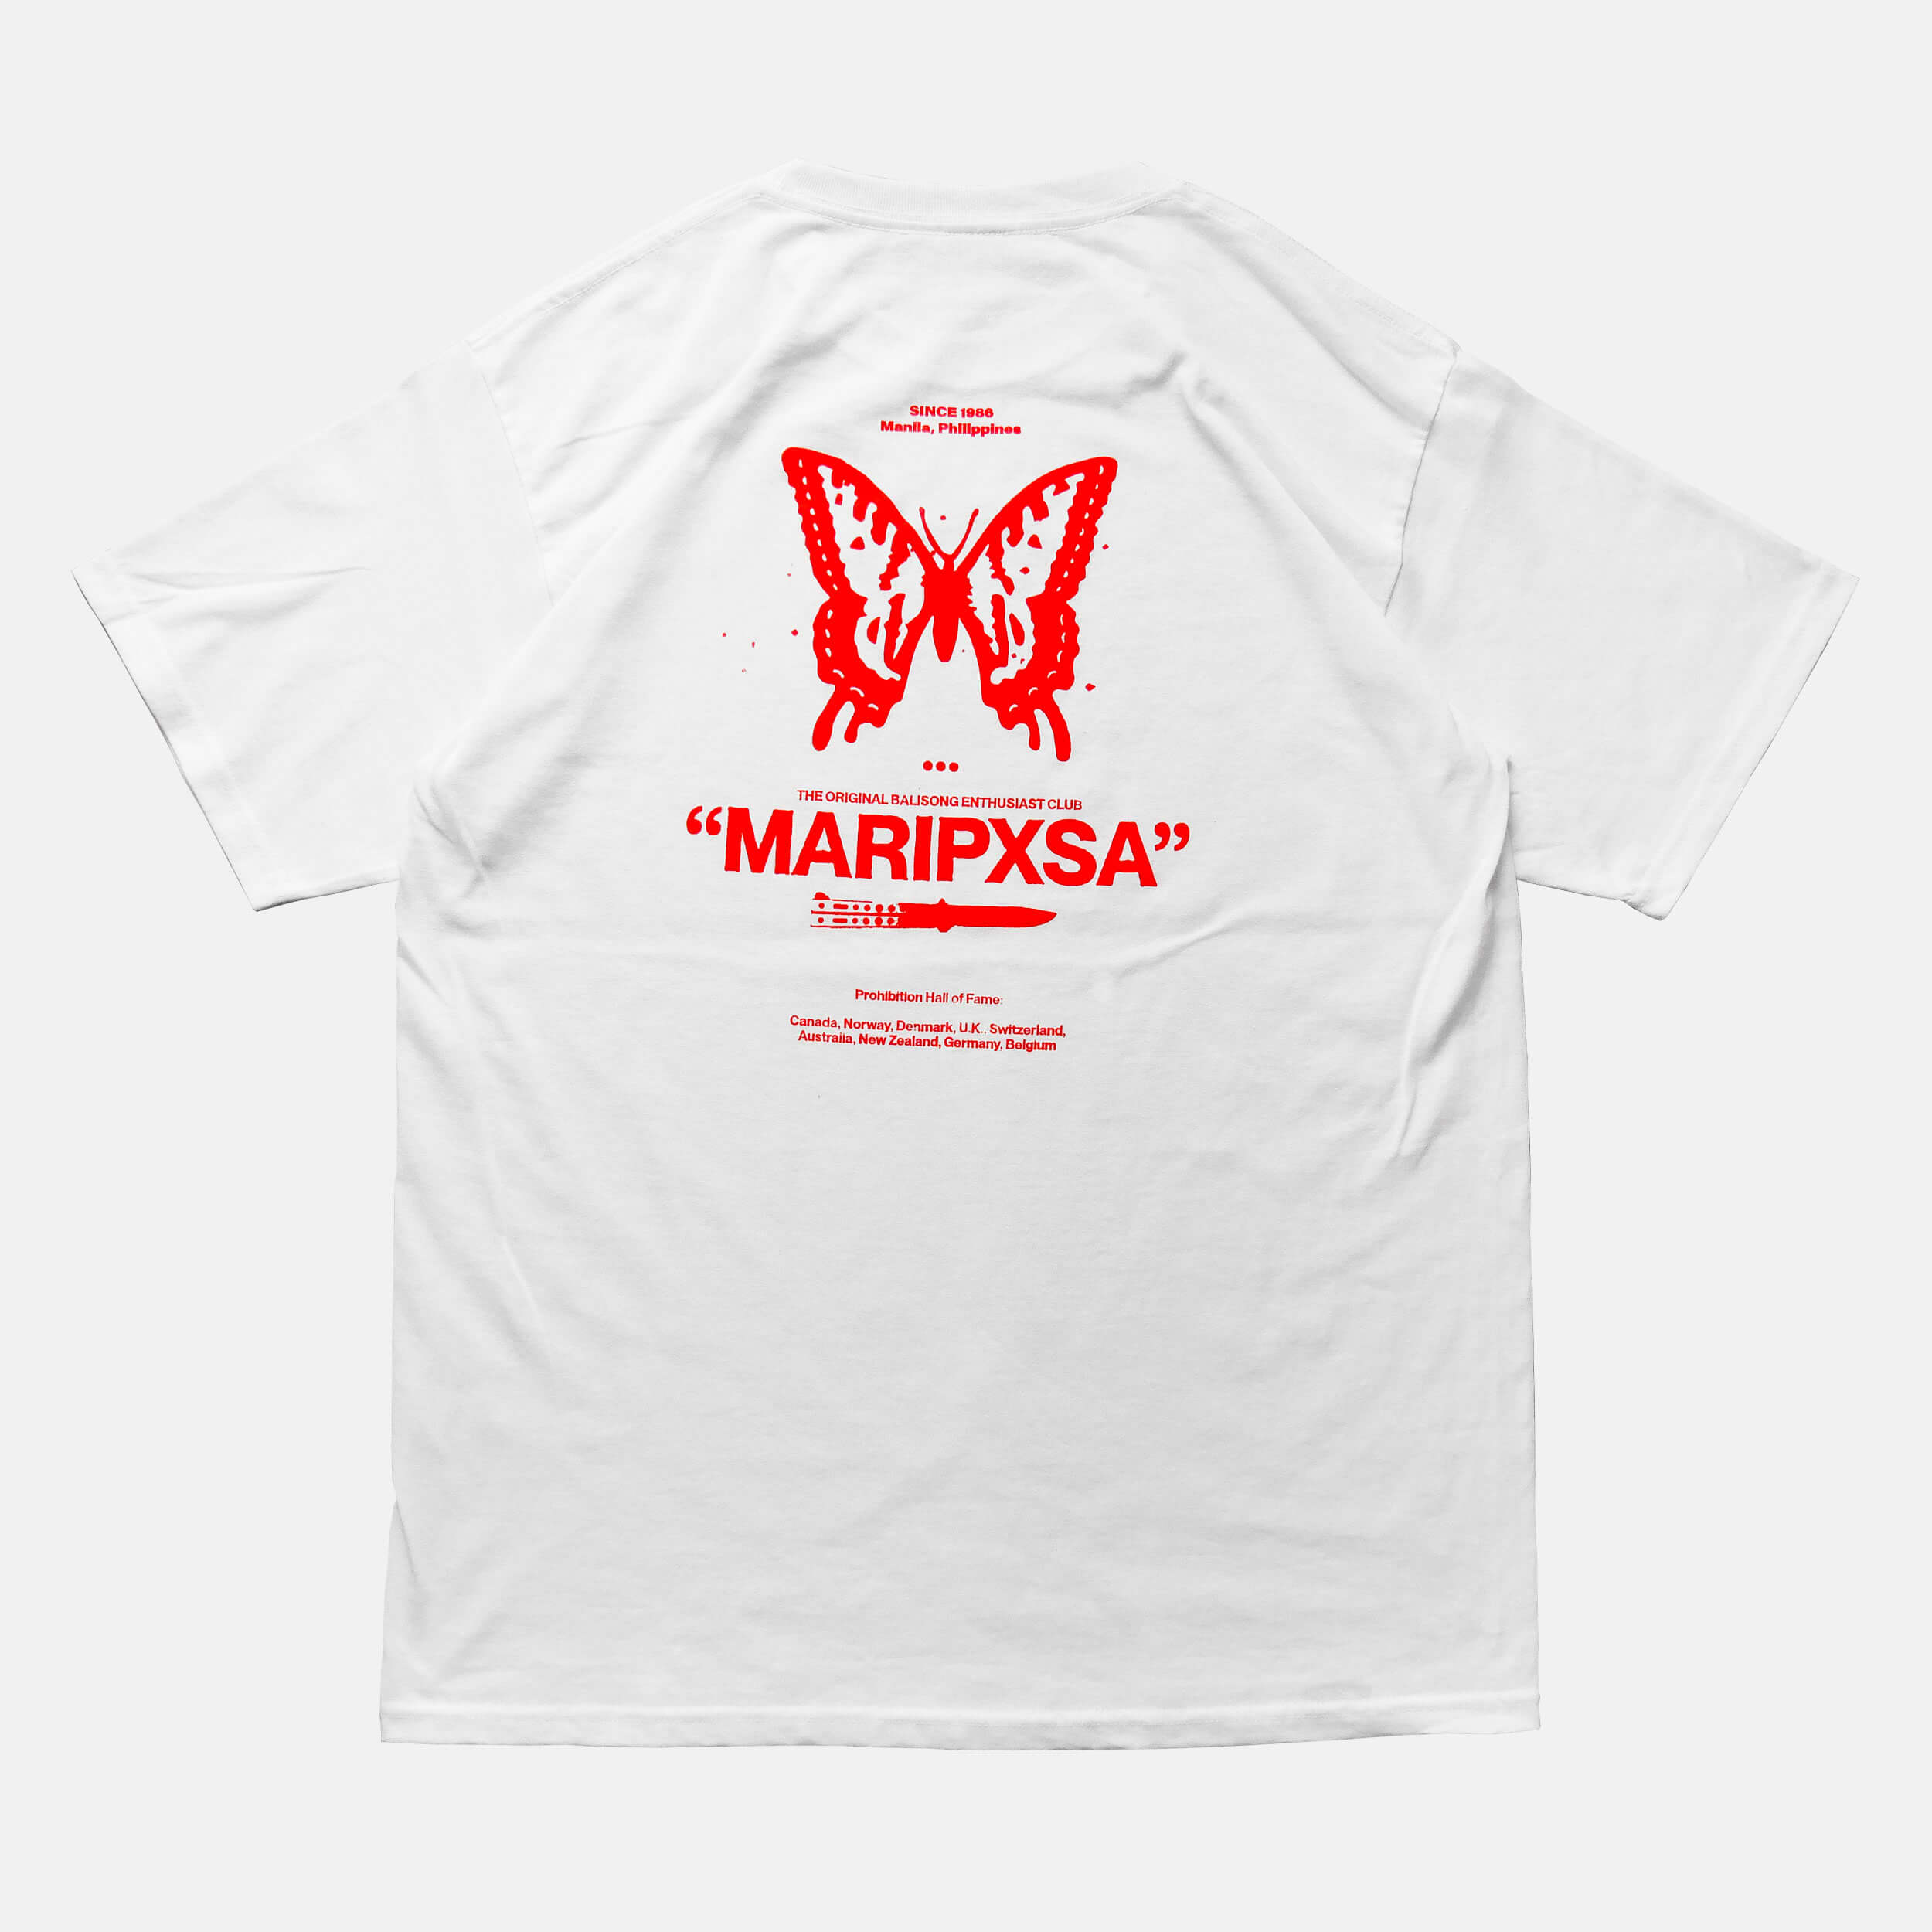 Back view of the screen-pinted 'MARIPXSA' BALISONG CLUB white t-shirt from PHOSIS Clothing